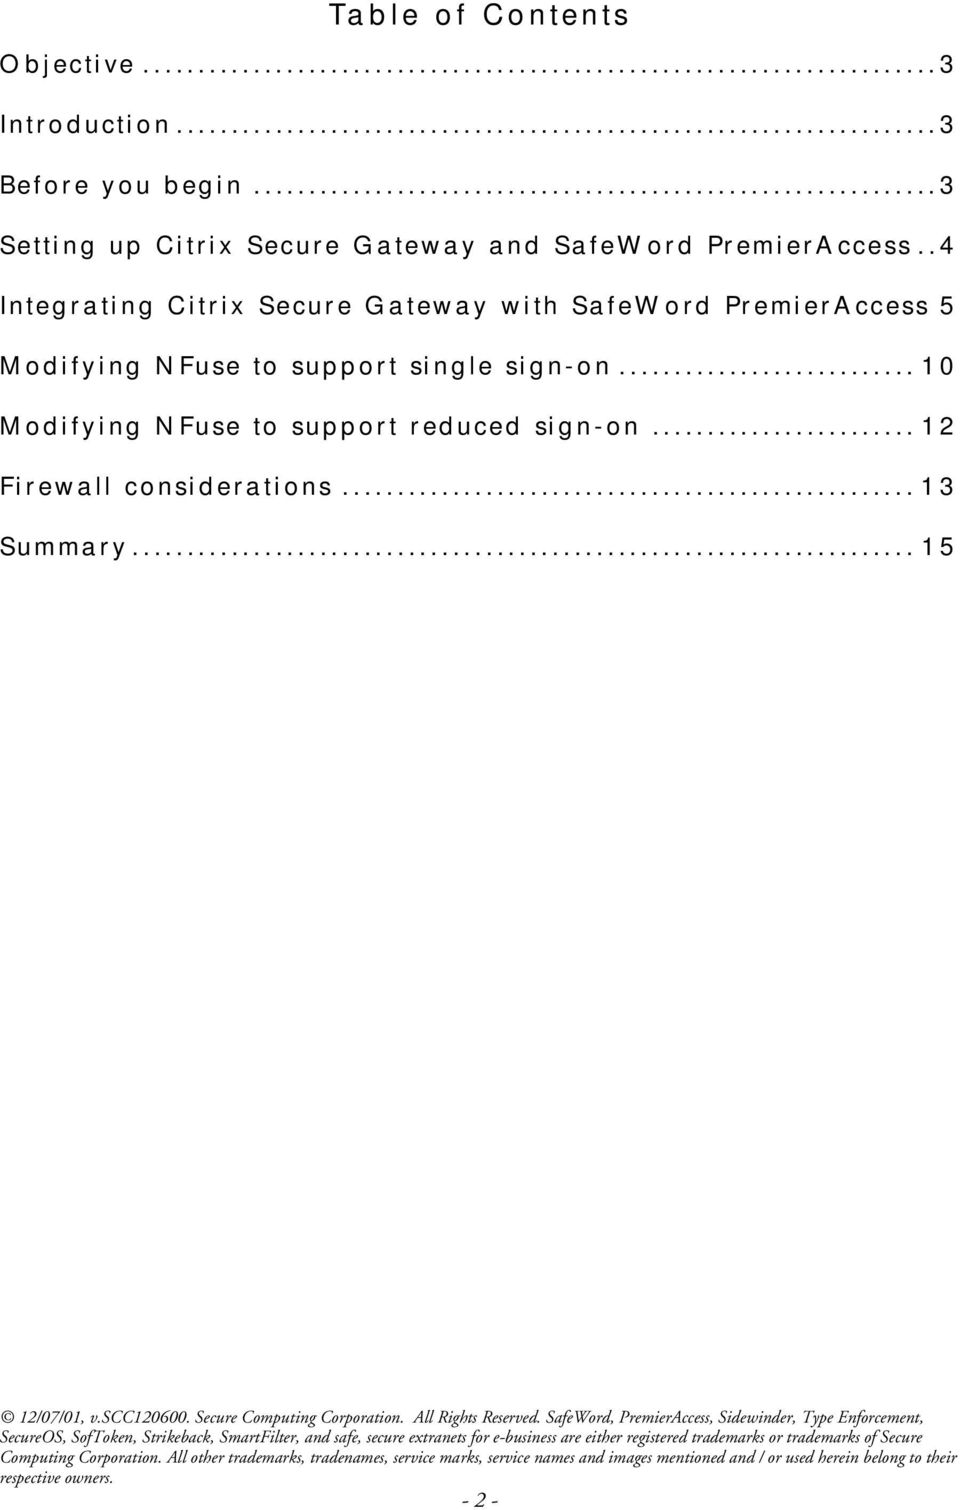 .4 Integrating Citrix Secure Gateway with SafeWord PremierAccess 5 Modifying NFuse to